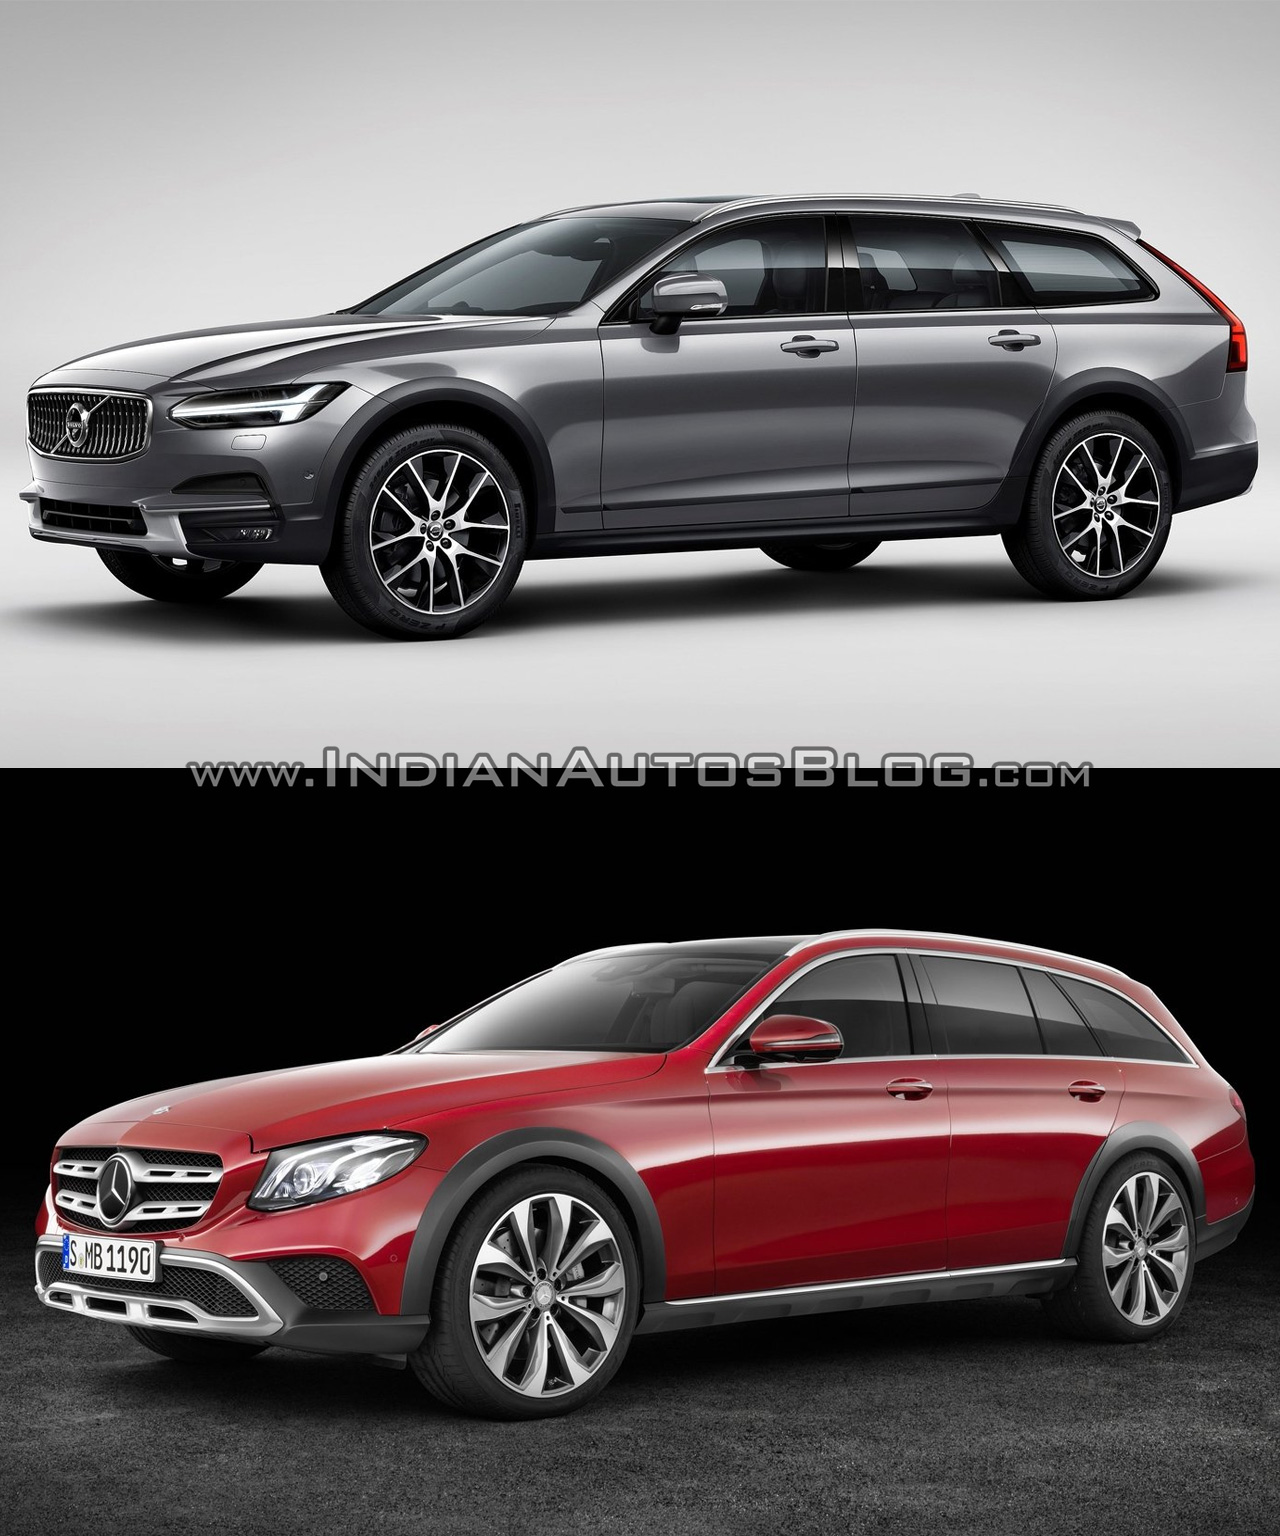 volvo v90 cc vs mercedes e class all terrain in images. Black Bedroom Furniture Sets. Home Design Ideas